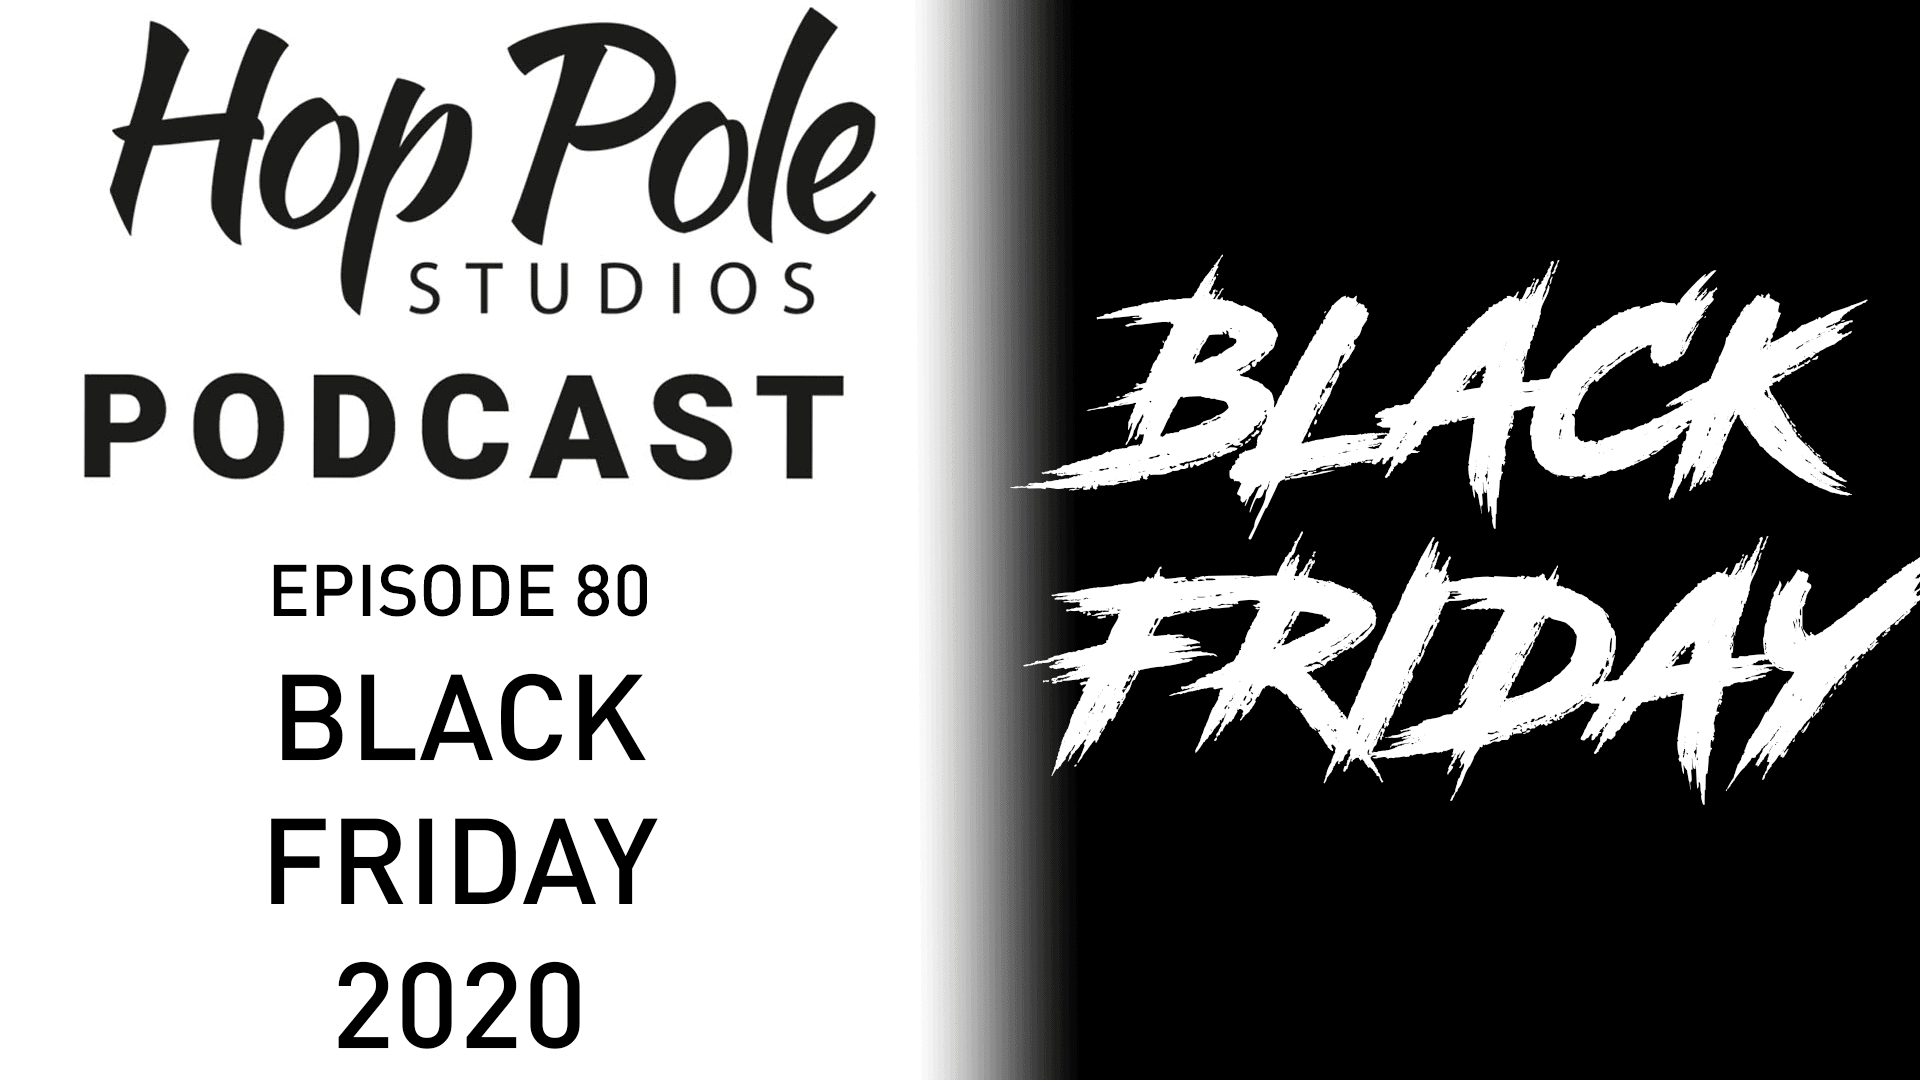 BLACK FRIDAY DEALS!!!  | The Hop Pole Podcast #080